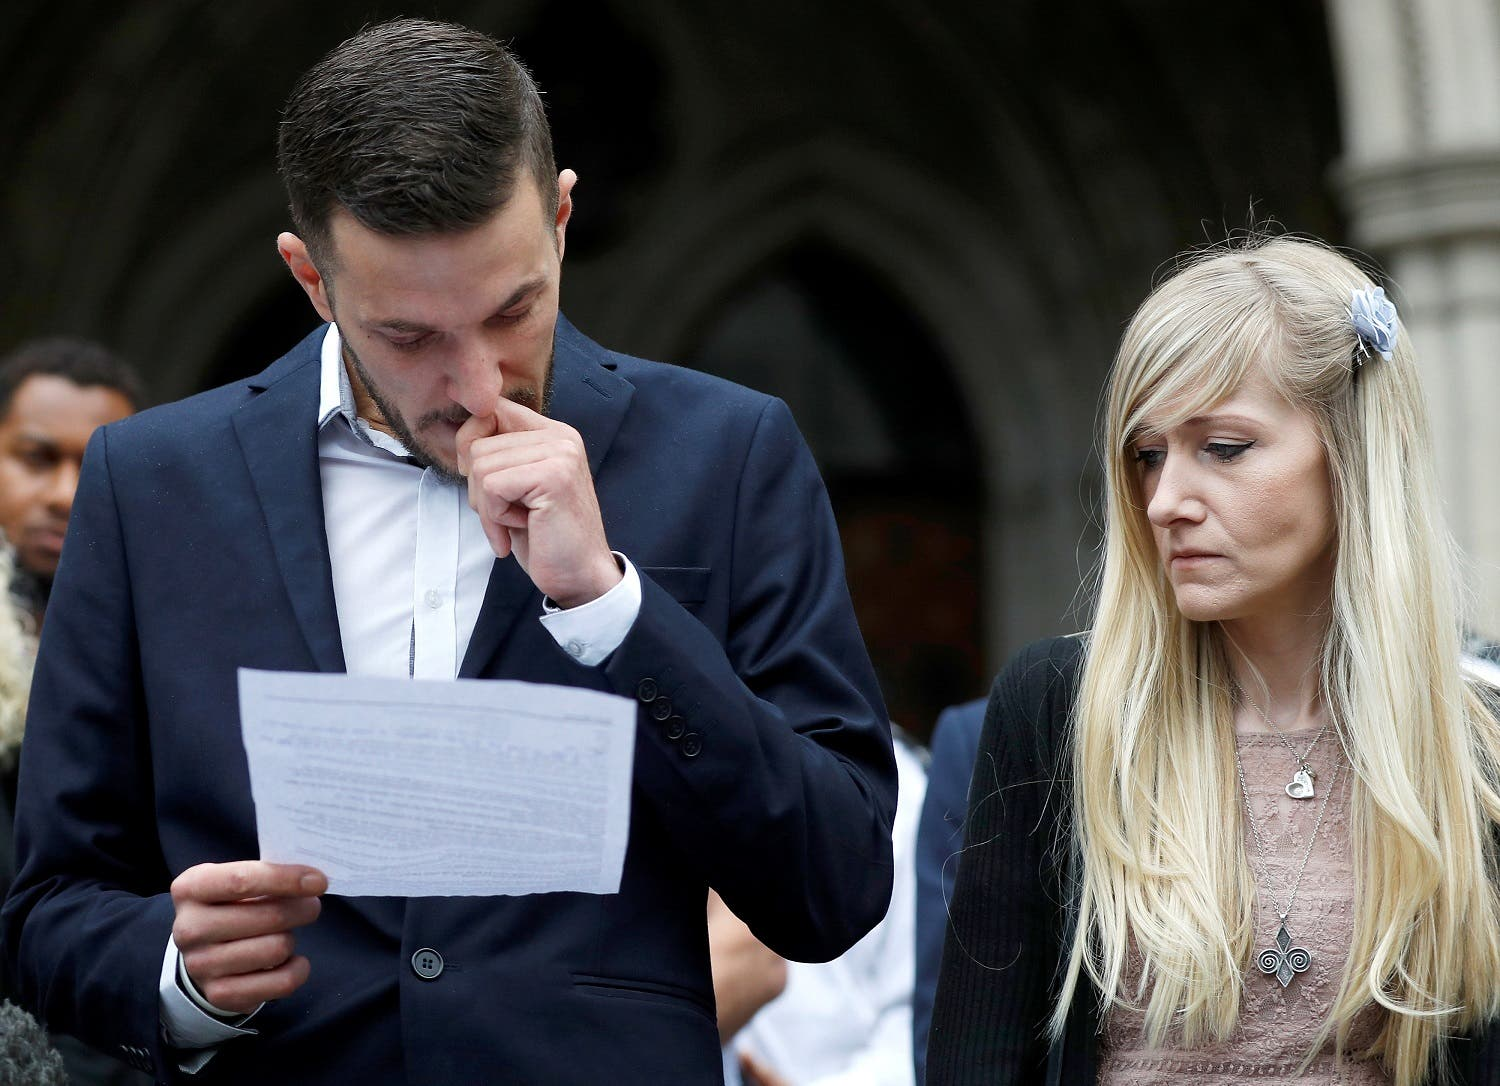 Charlie Gard's parents Connie Yates and Chris Gard read a statement at the High Court after a hearing on their baby's future, in London, Britain July 24, 2017. (Reuters)